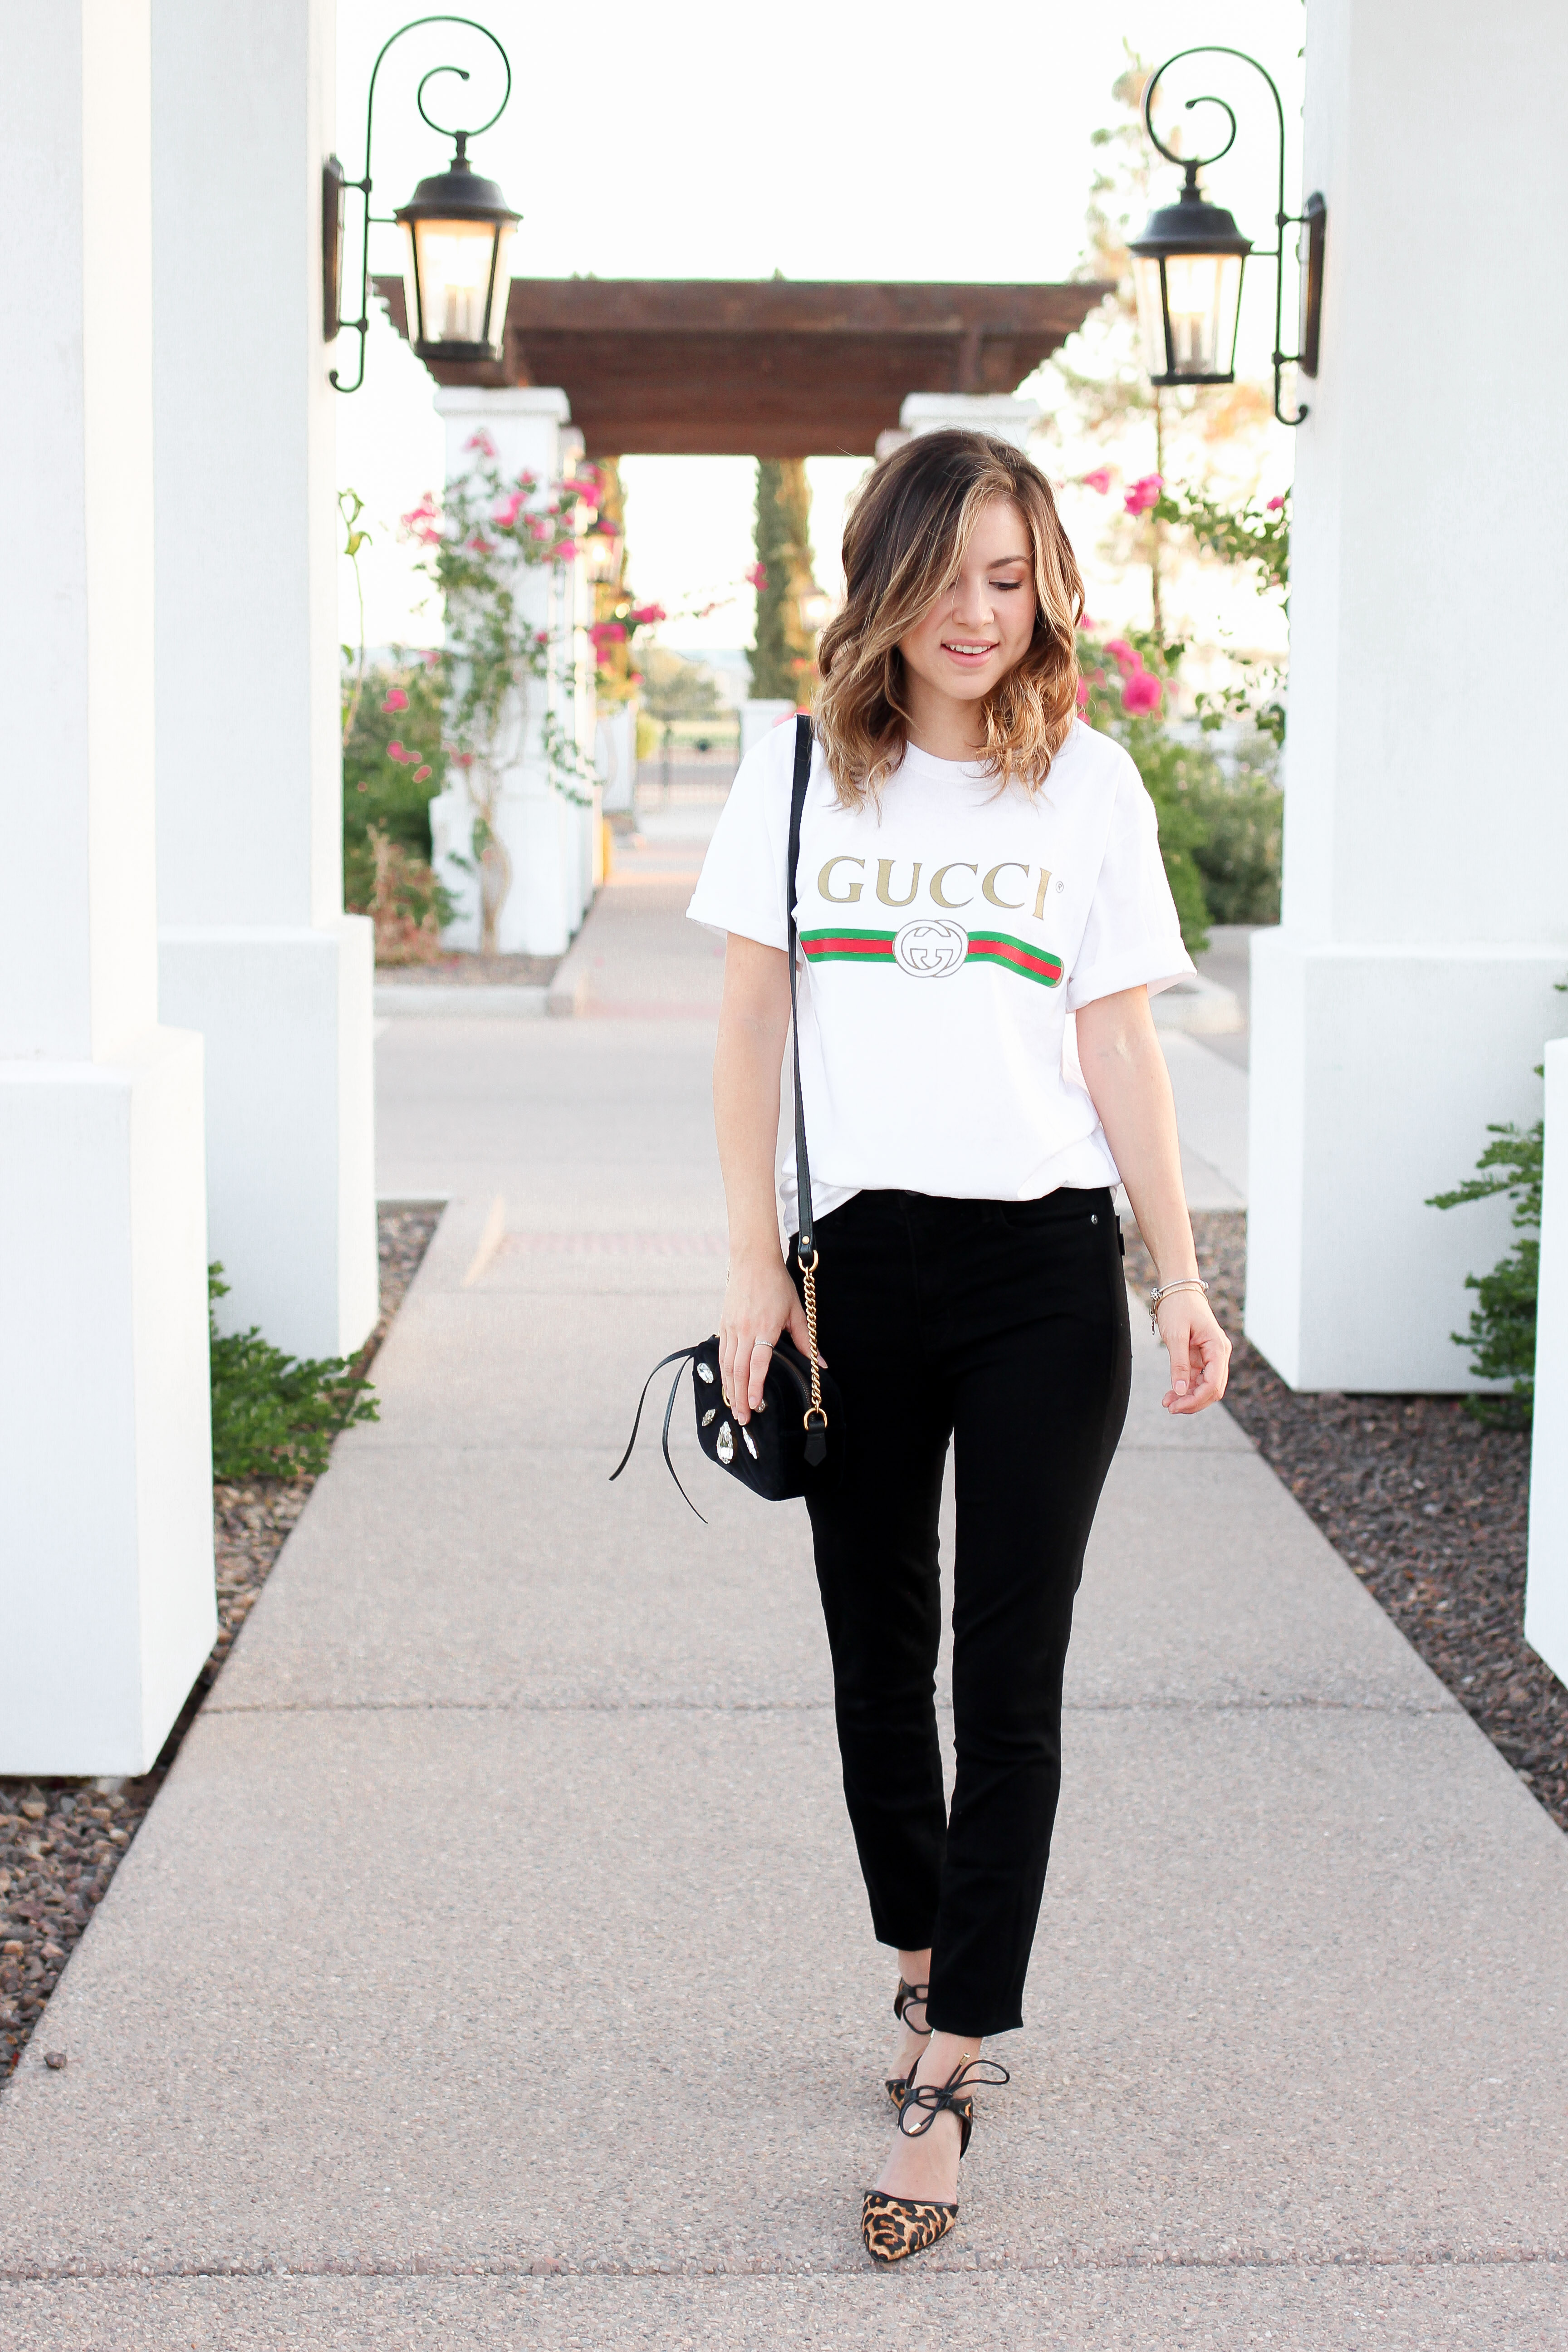 38cb0eed4 Simply Sutter – simply sutter – gucci top – oversized tee – gucci bag –  leopard heels_7040